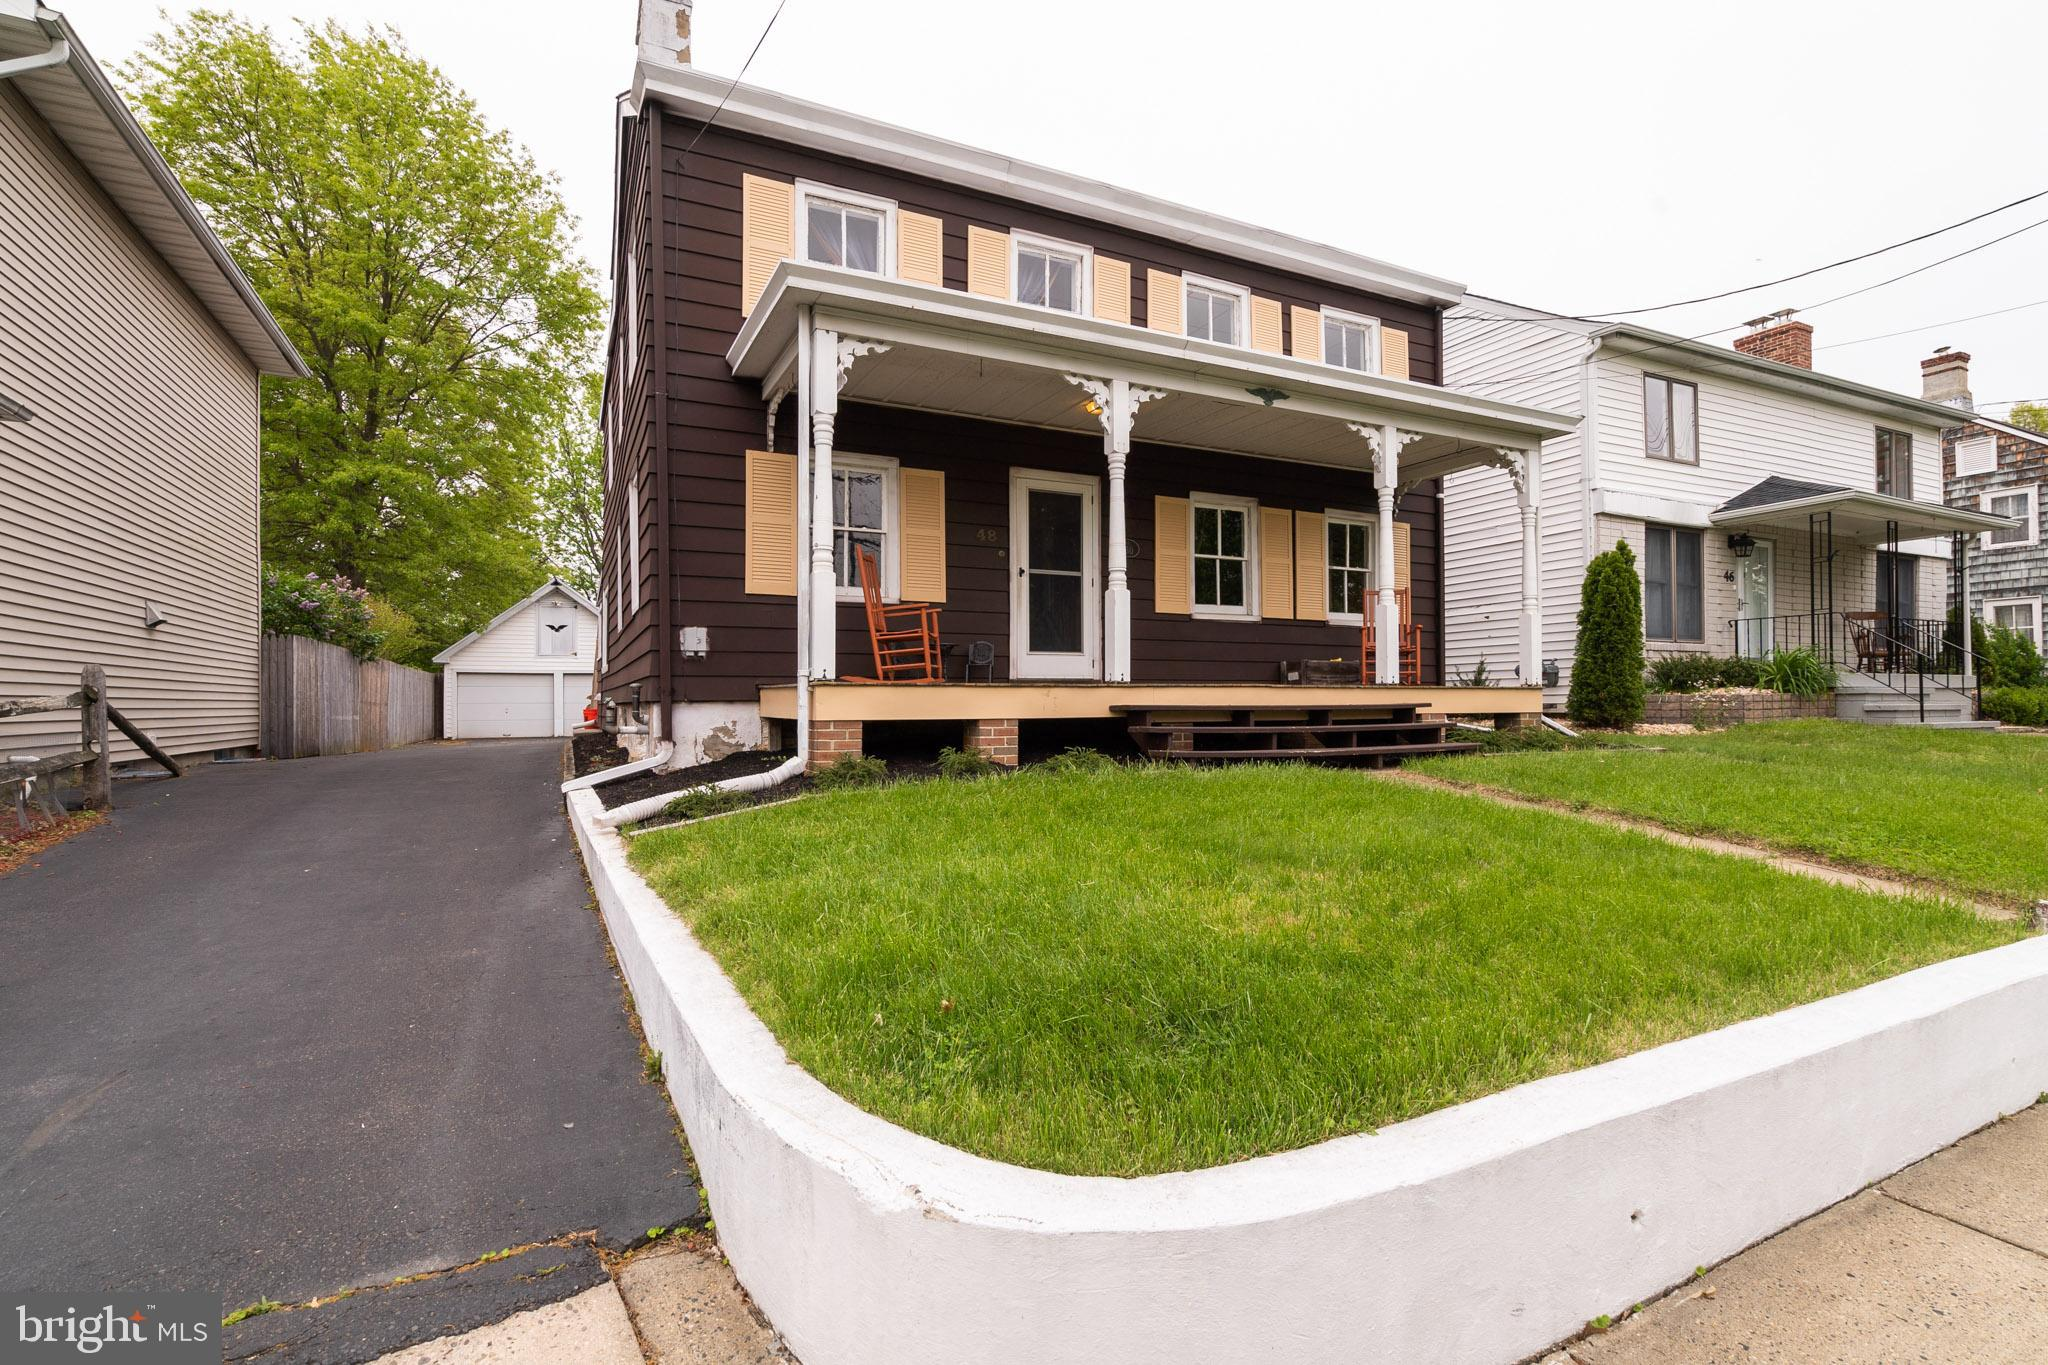 48 S MAIN STREET, WINDSOR, NJ 08561